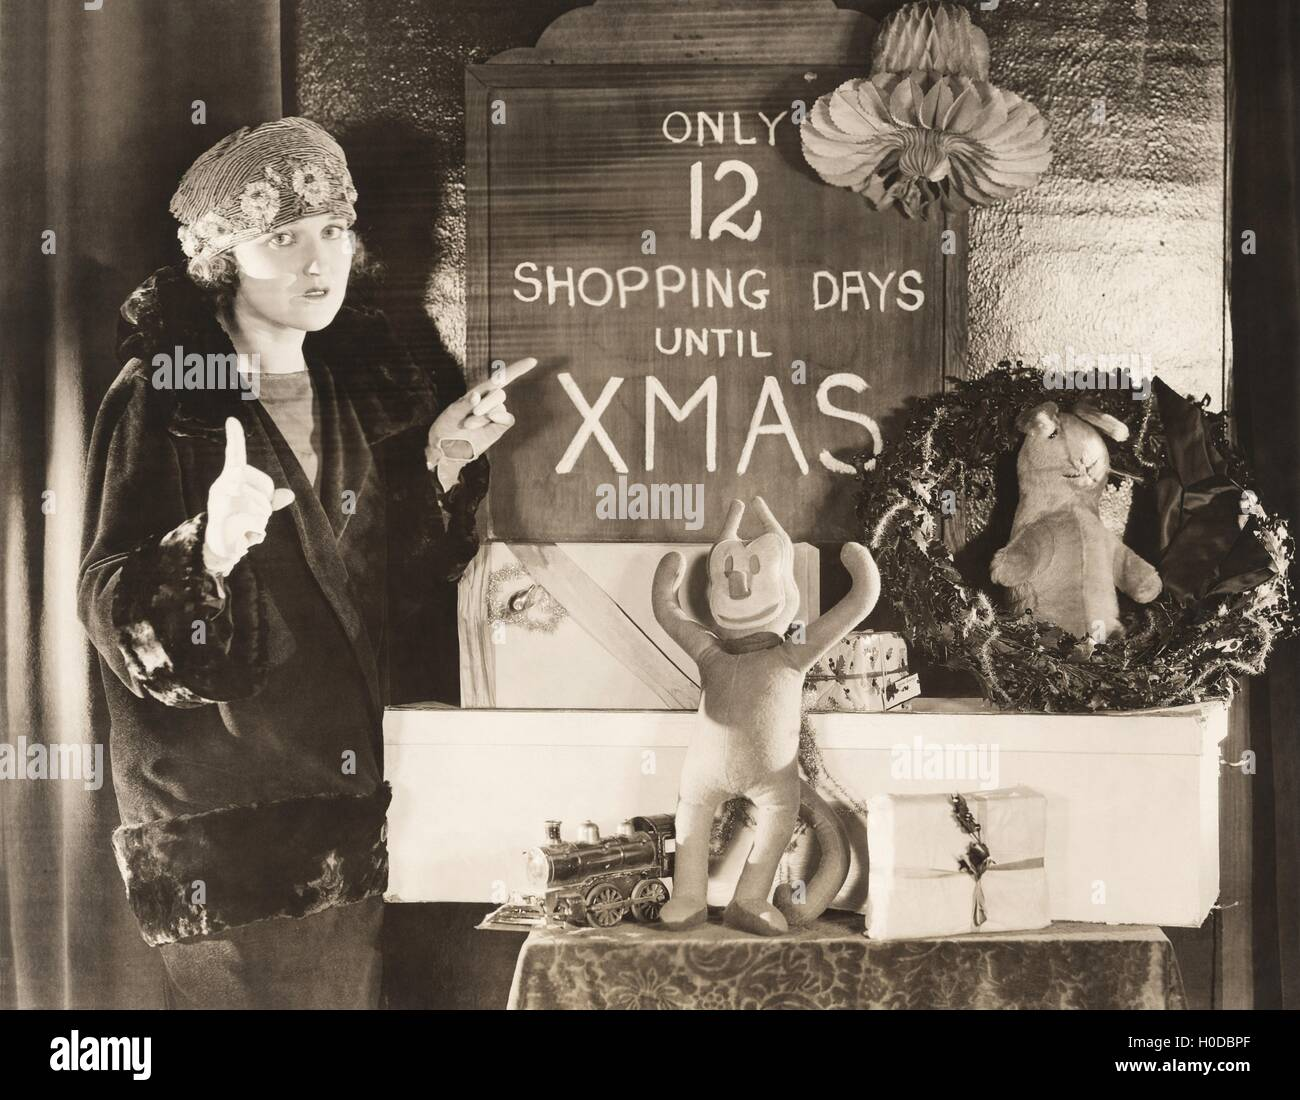 Only 12 shopping days until Xmas Stock Photo